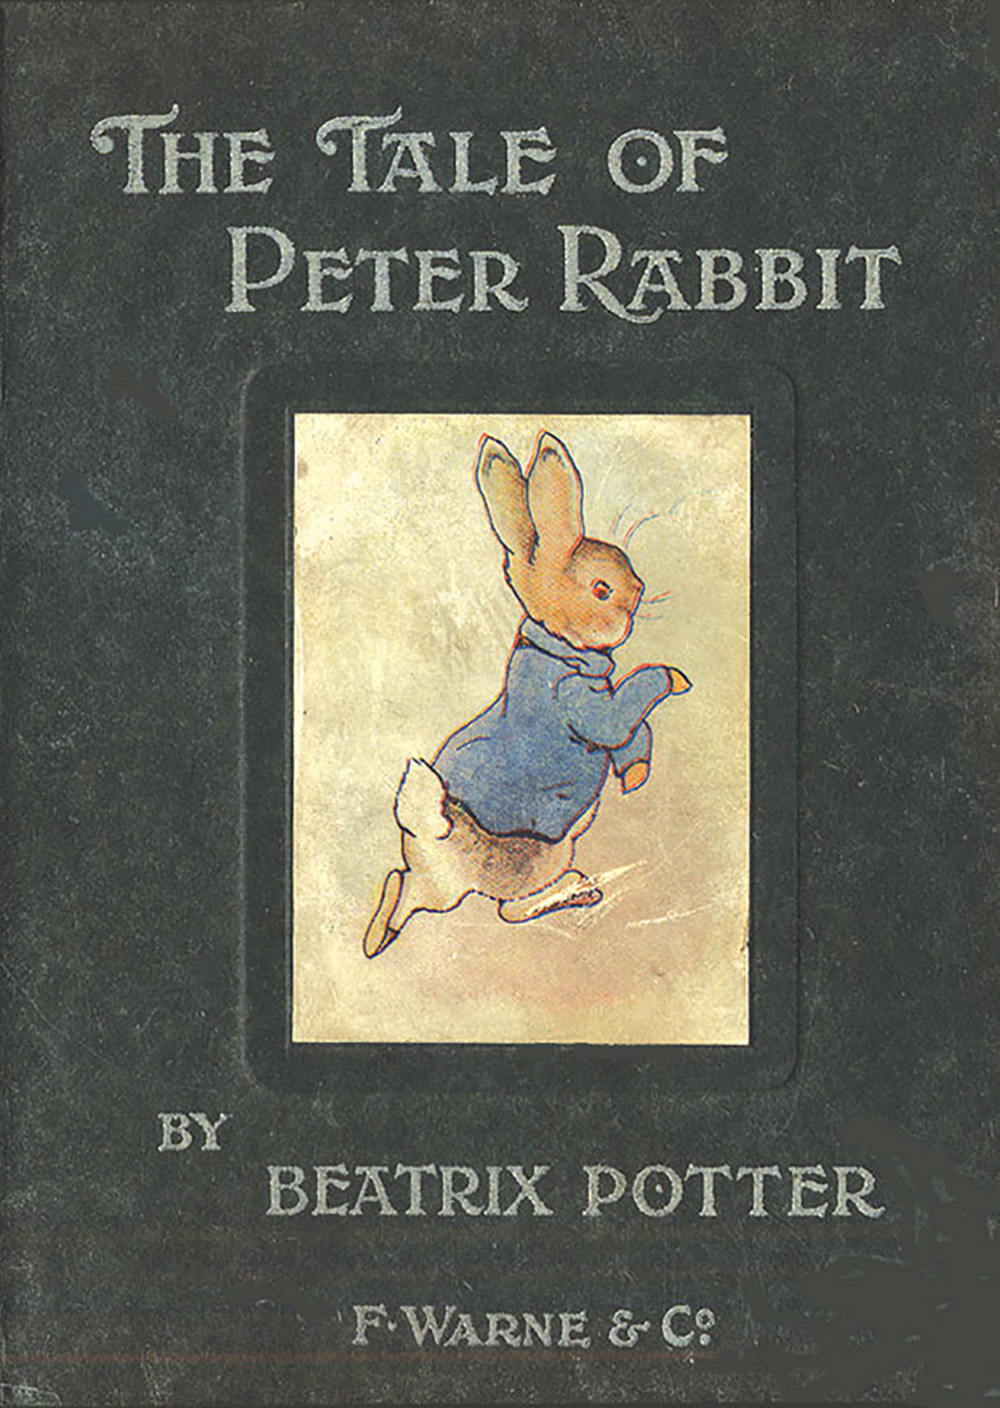 1902 cover of Peter Rabbit